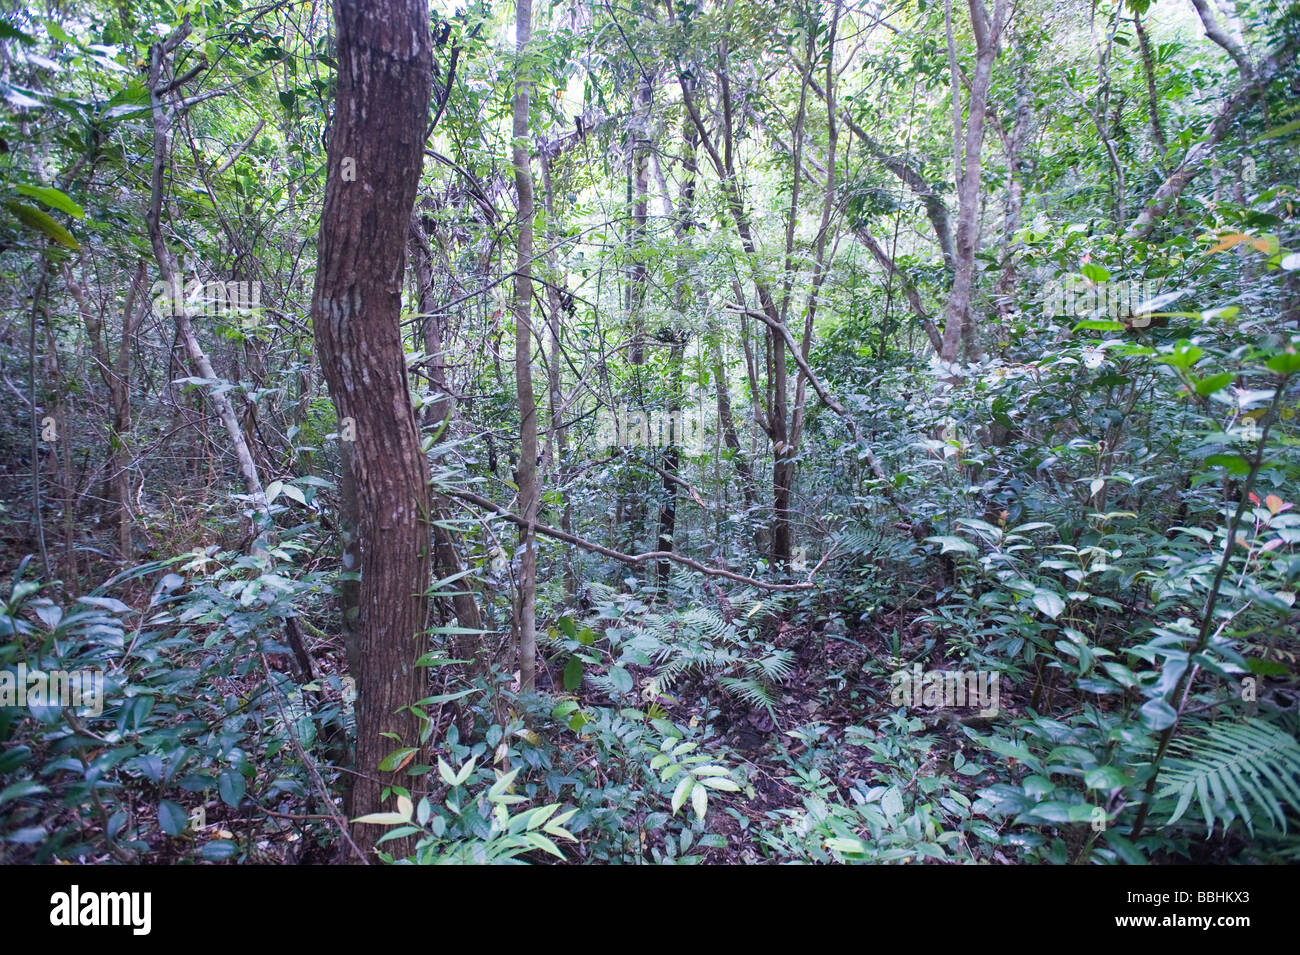 Forest regeneration secondary growth in Alcoy Forest Cebu Philippines - Stock Image